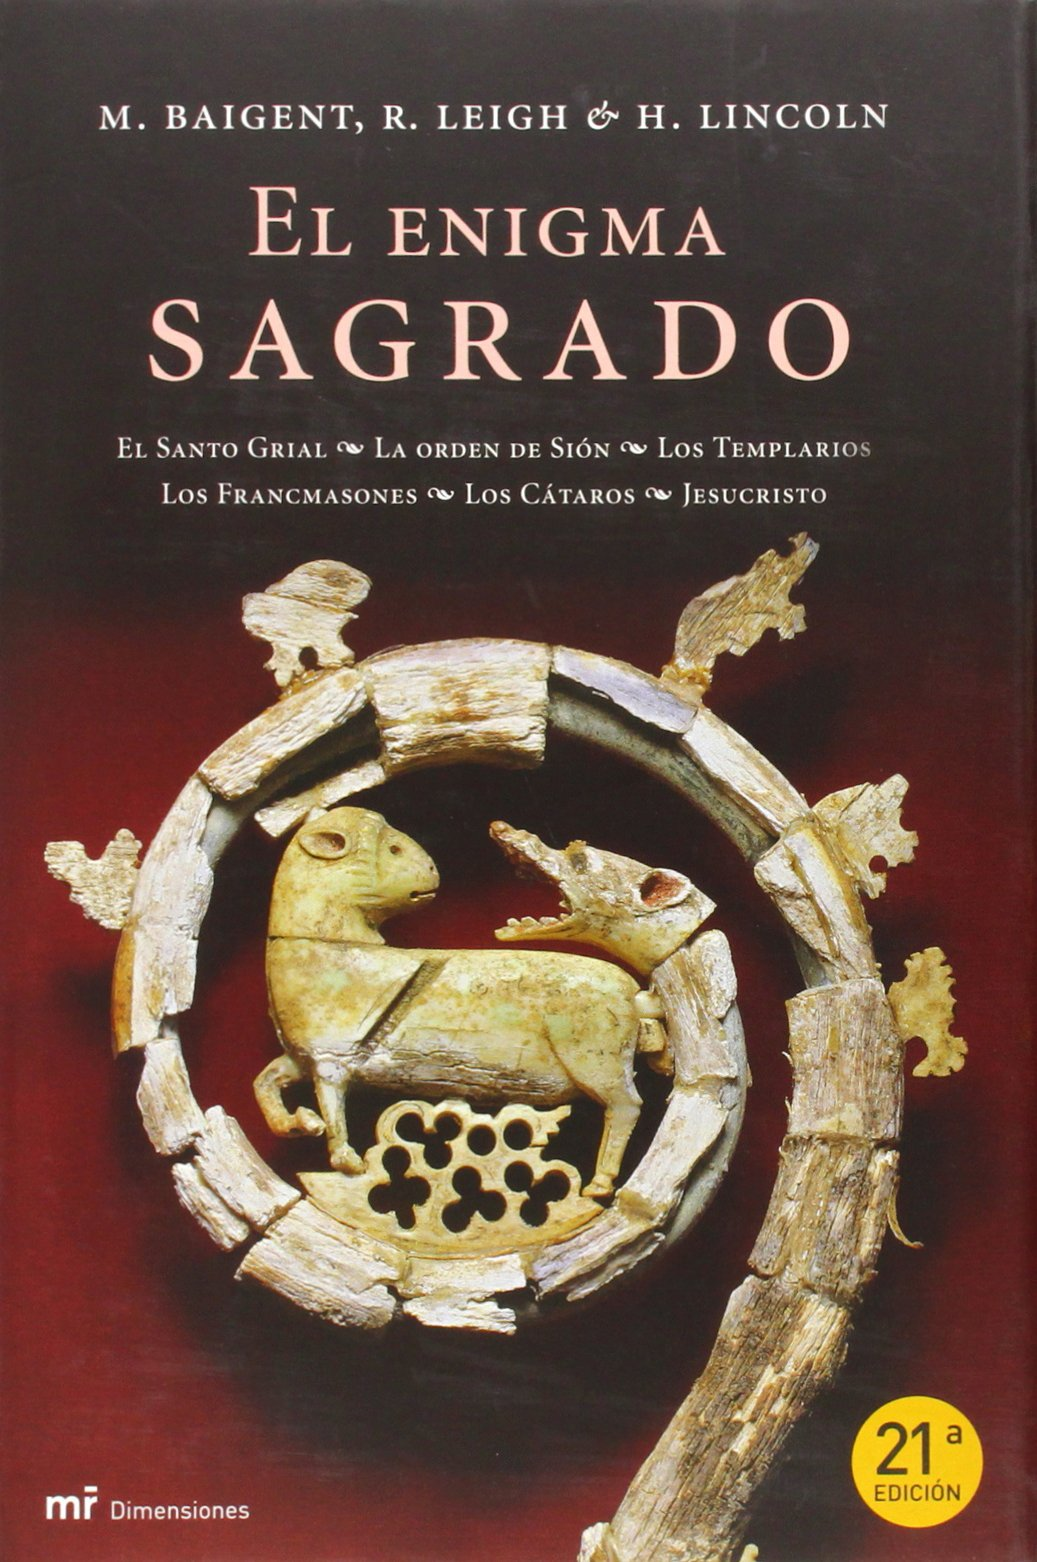 El enigma sagrado (MR Dimensiones): Amazon.es: Baigent, Michael, Leigh, Richard, Lincoln, H.: Libros